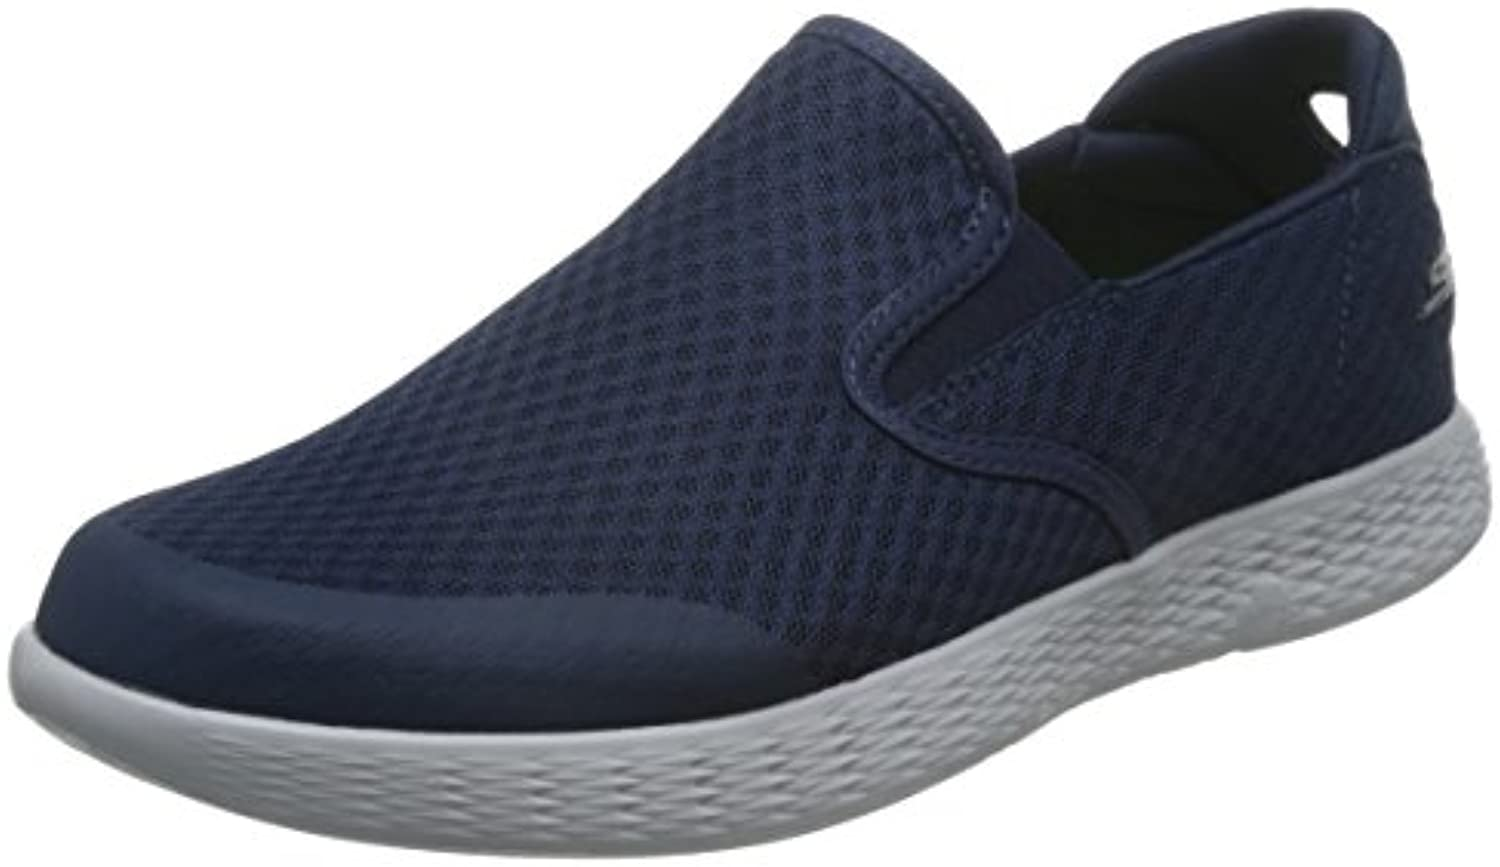 SKECHERS ON THE GO GLIDE-RESPONSE -53780NVGY- (41)